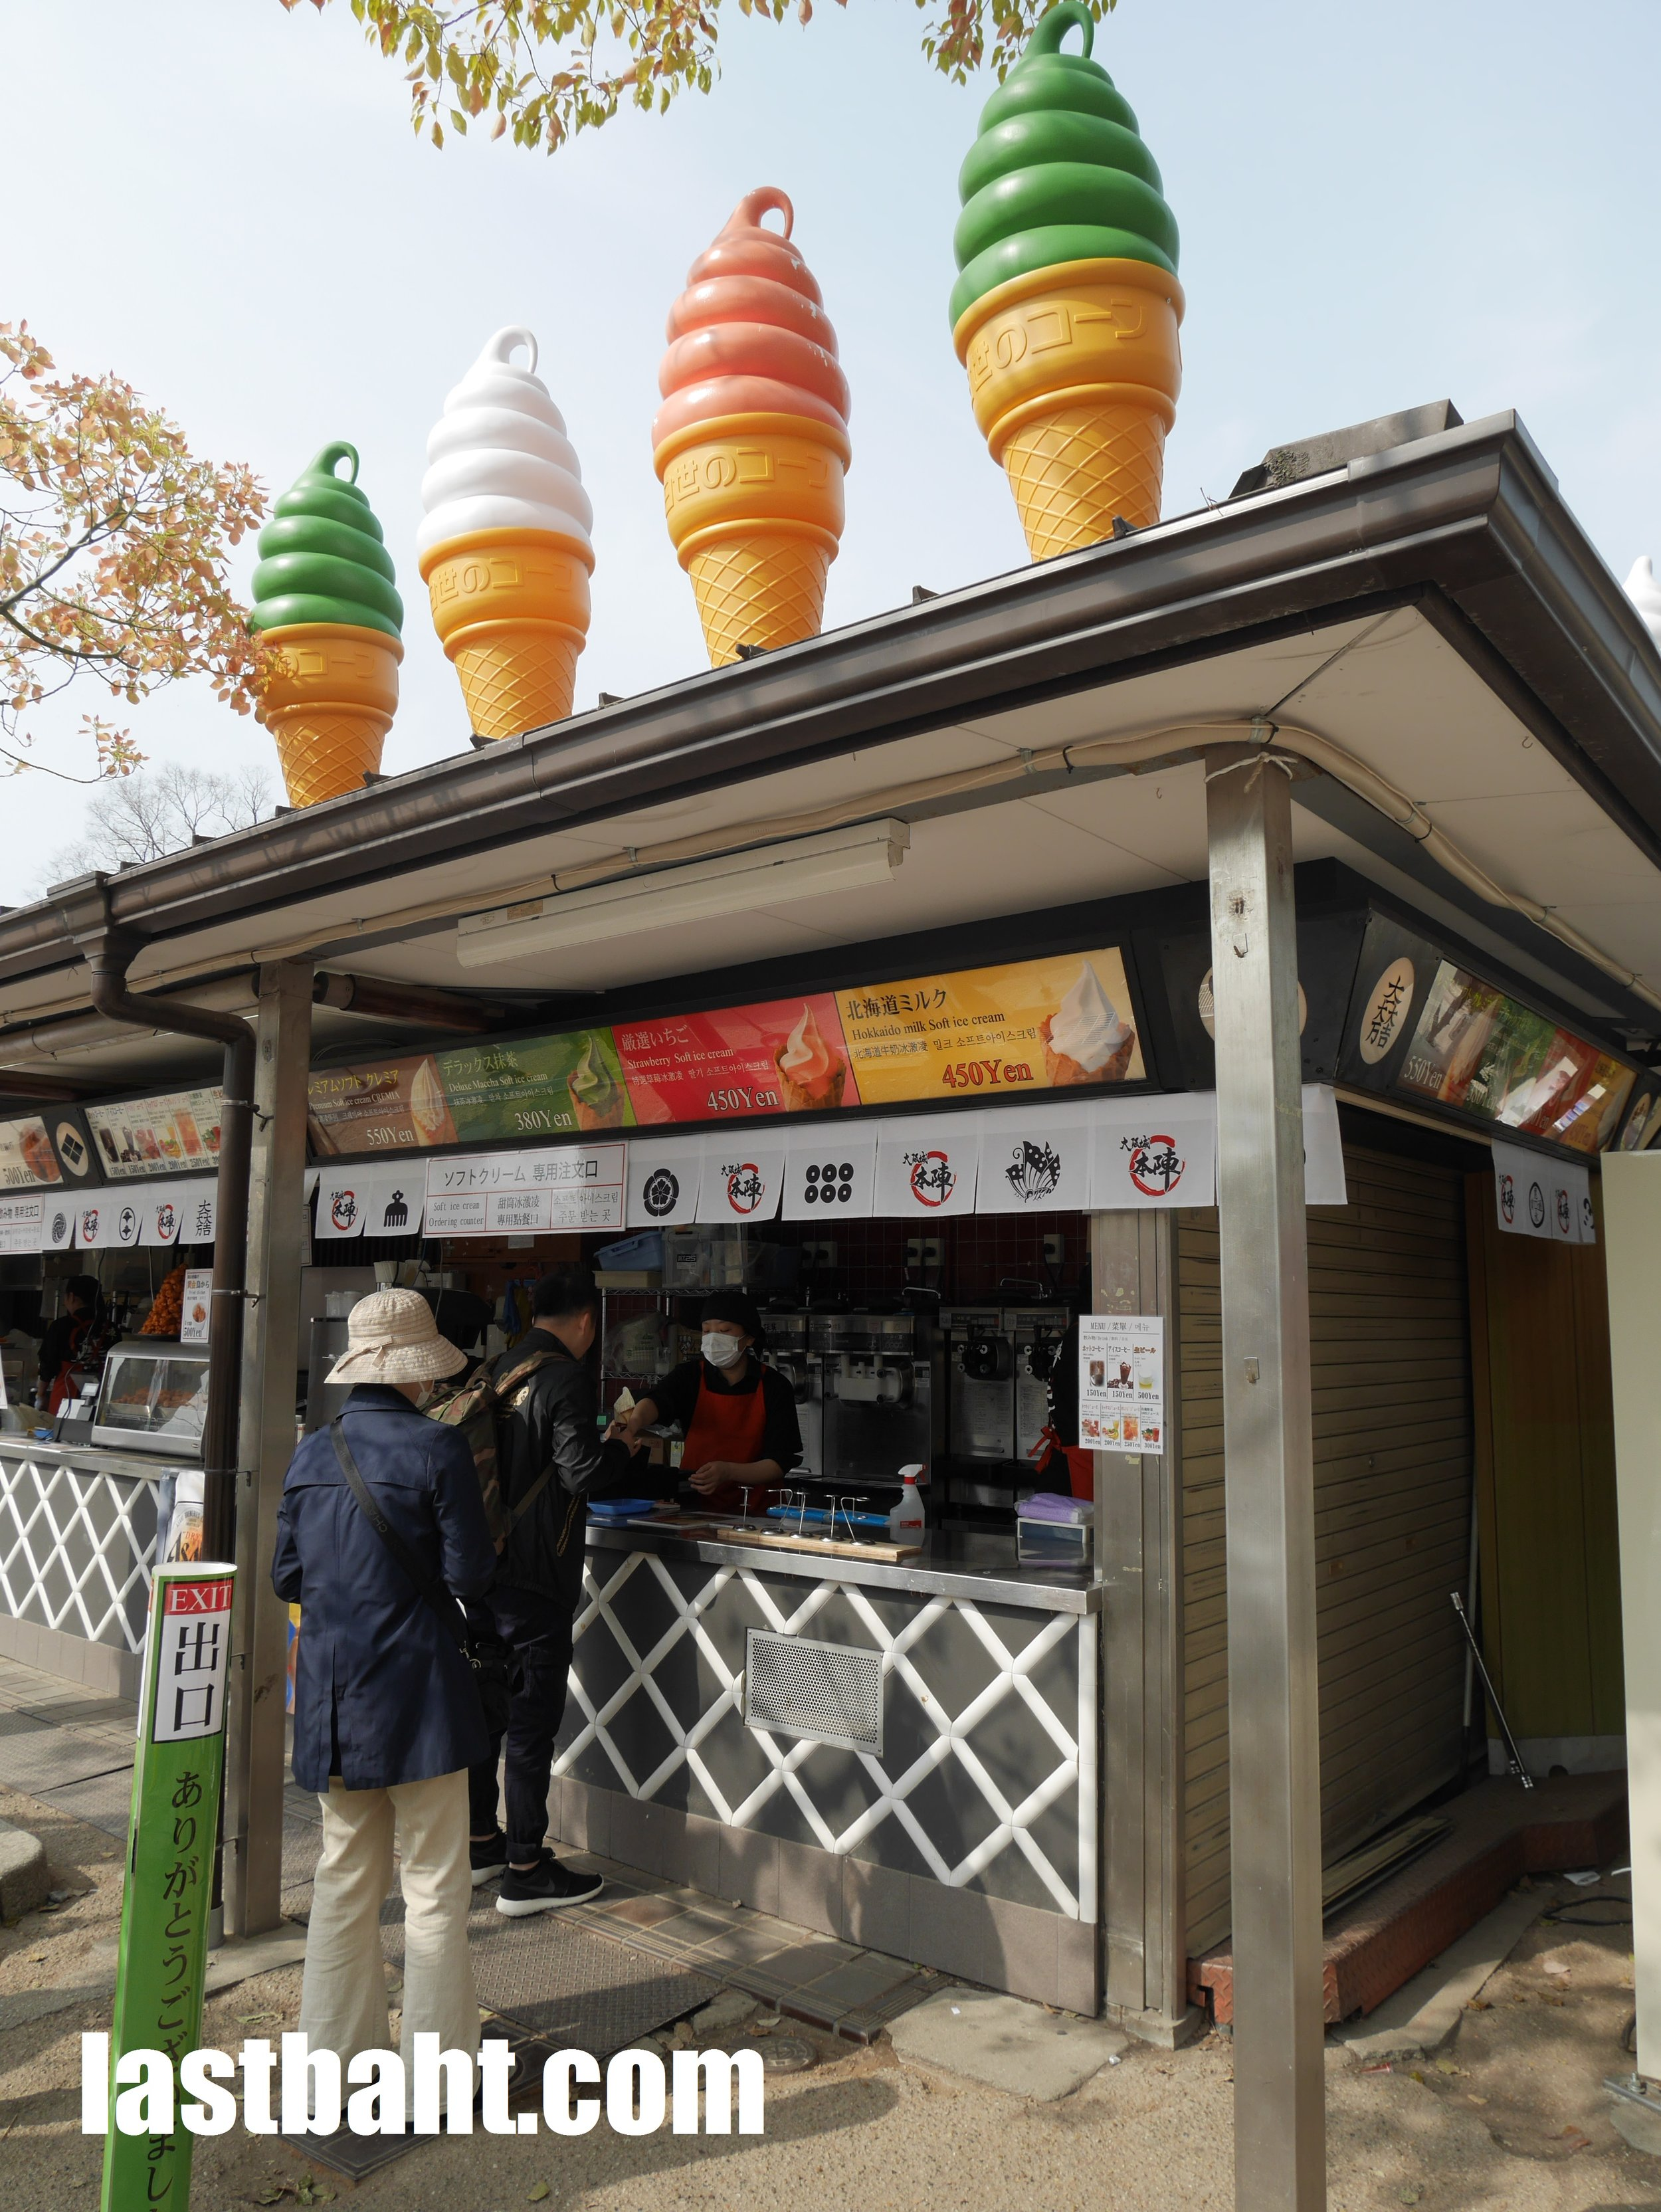 Cremia ice cream for sale in Osaka, Japan